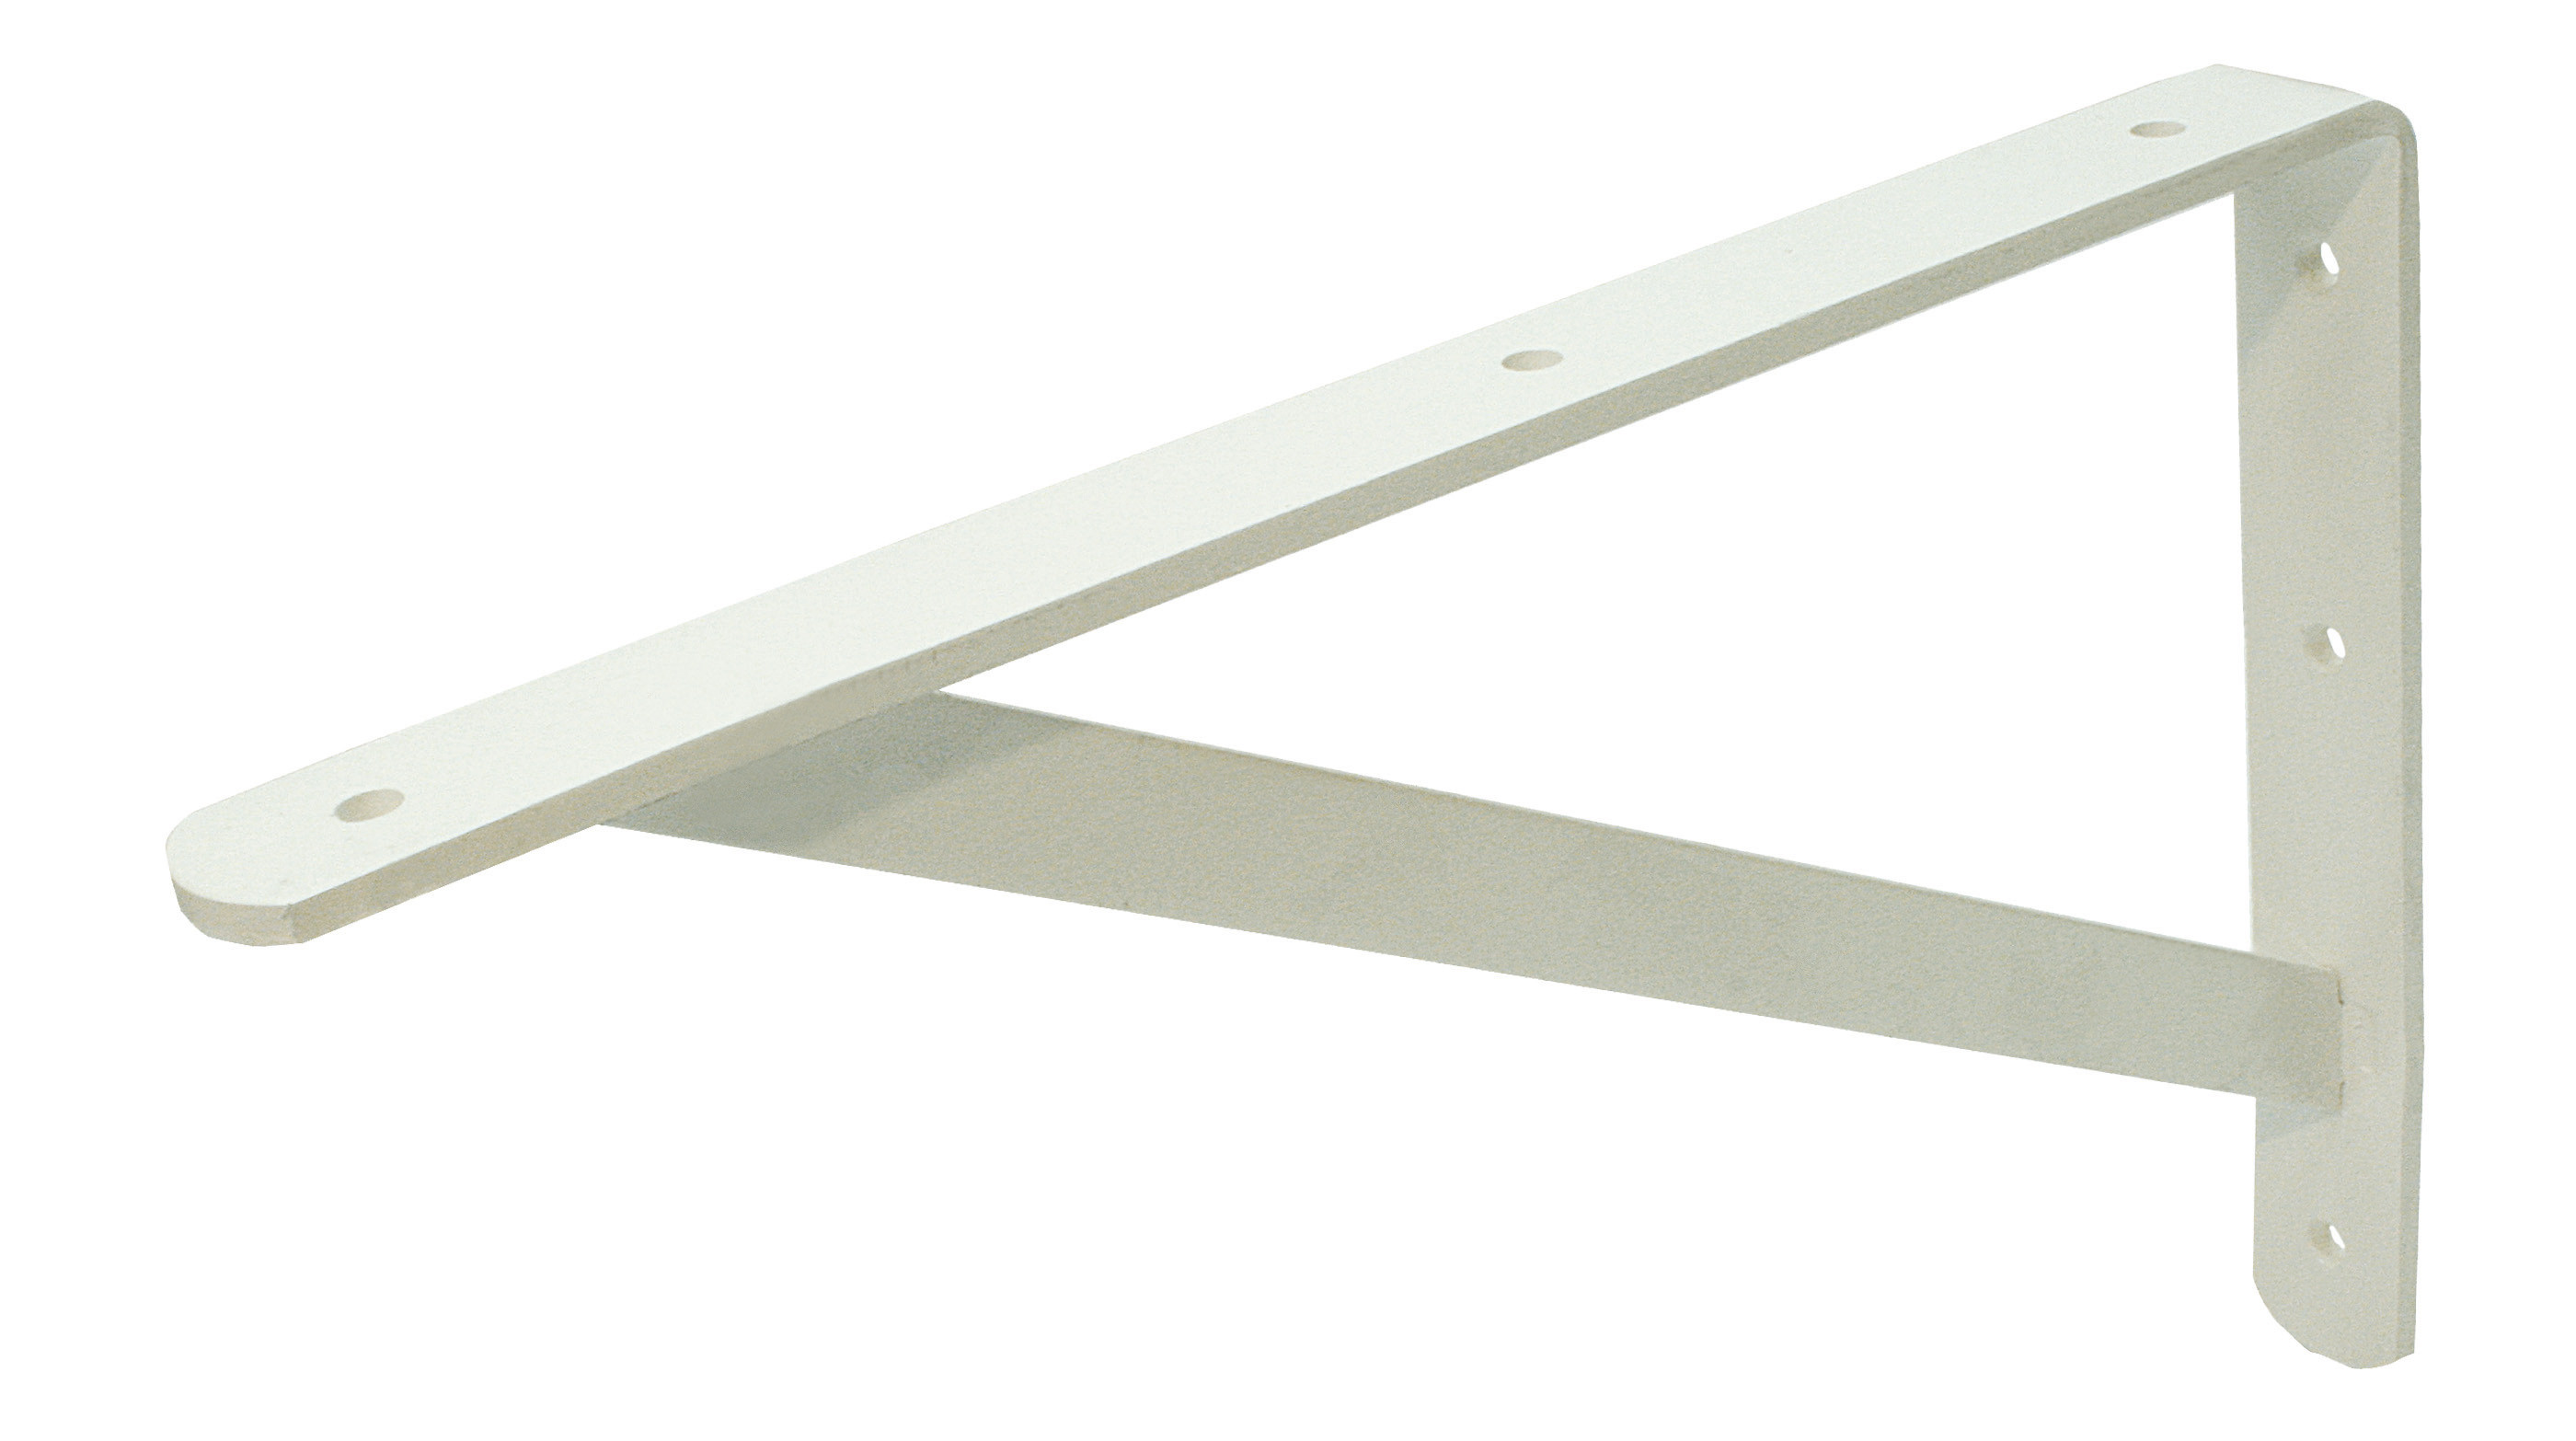 Shelf bracket white 300x500 30x4/20x4 EPW